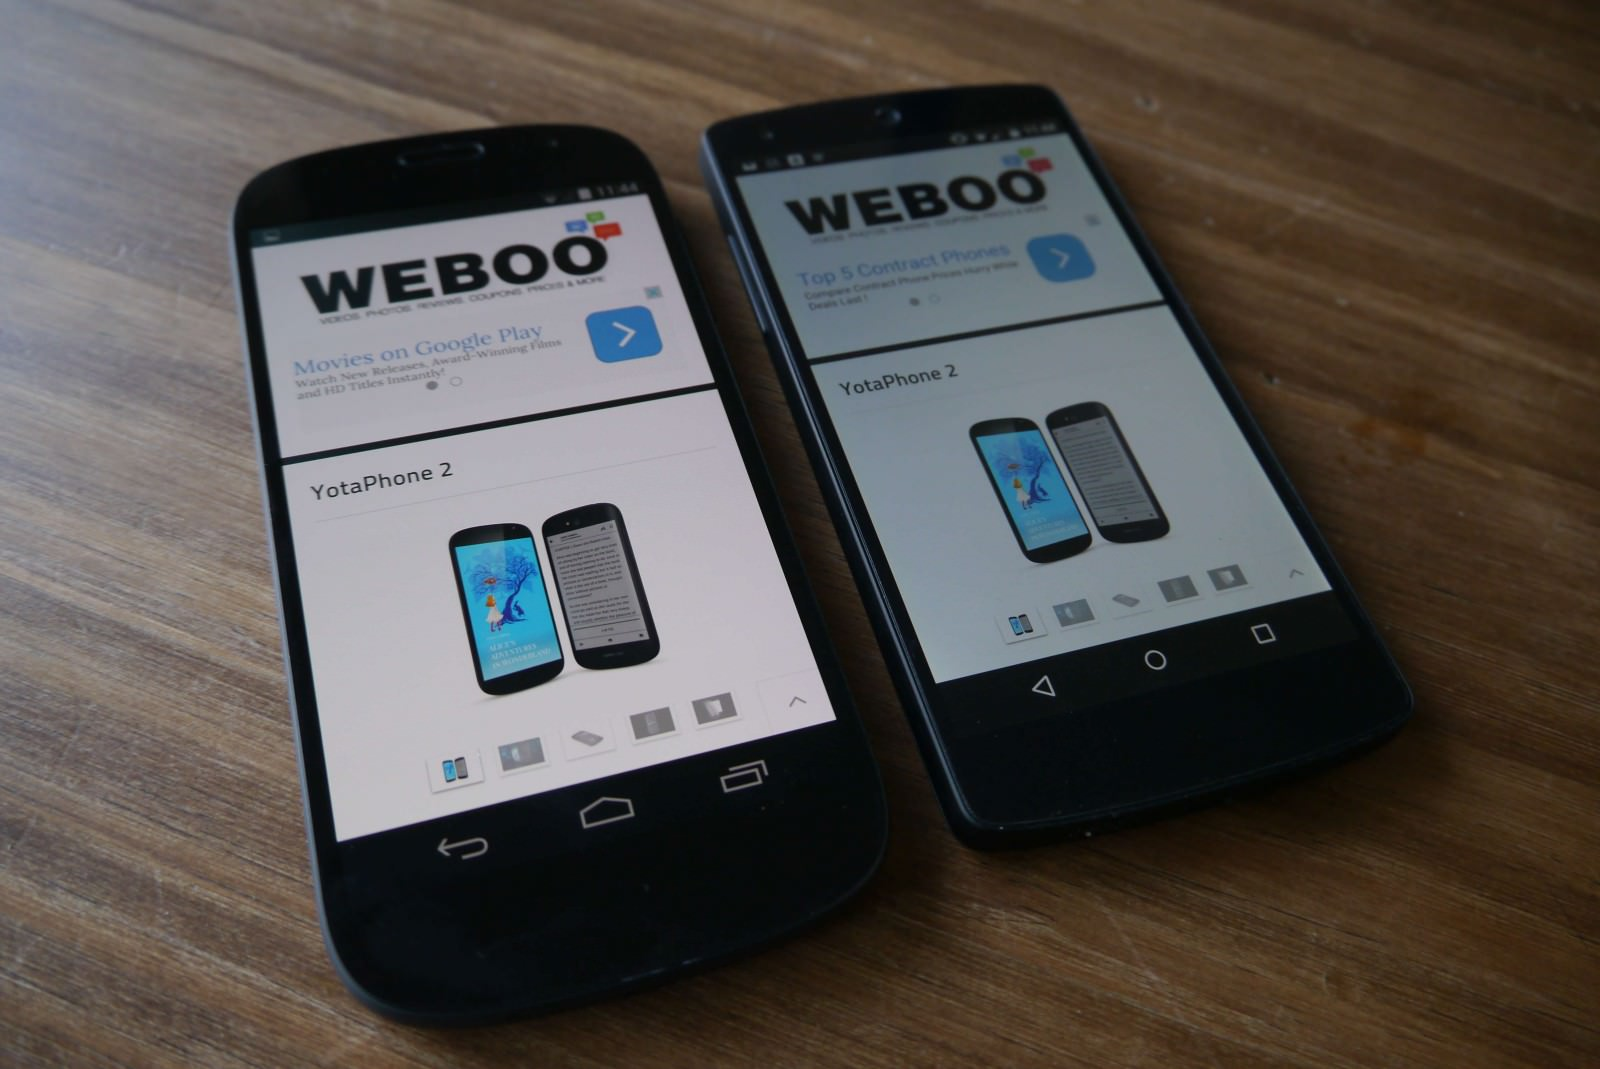 yotaphone-2-review-display-weboo-co-5